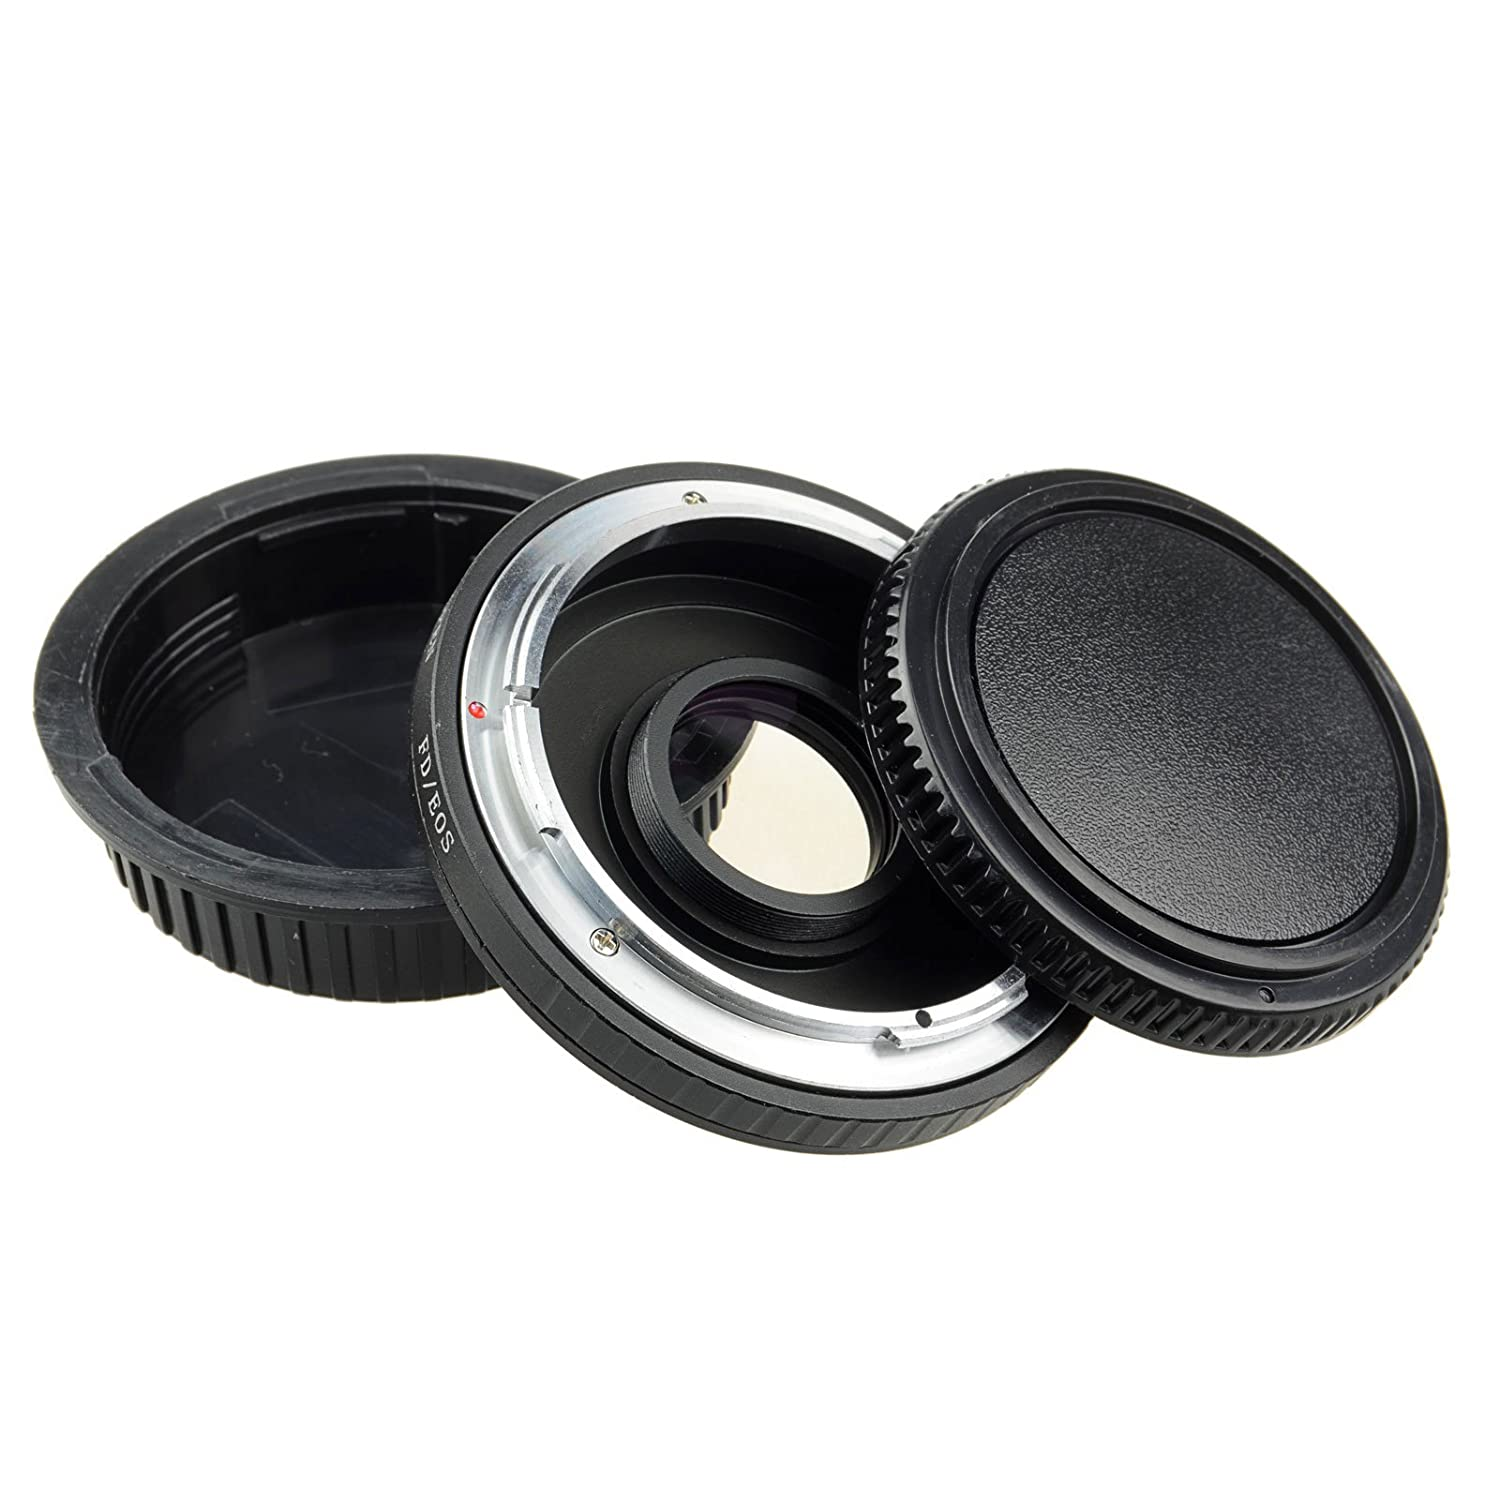 Amazon com : DSLRKIT CANON FD Lens to EOS EF Body Mount Adapter 450D